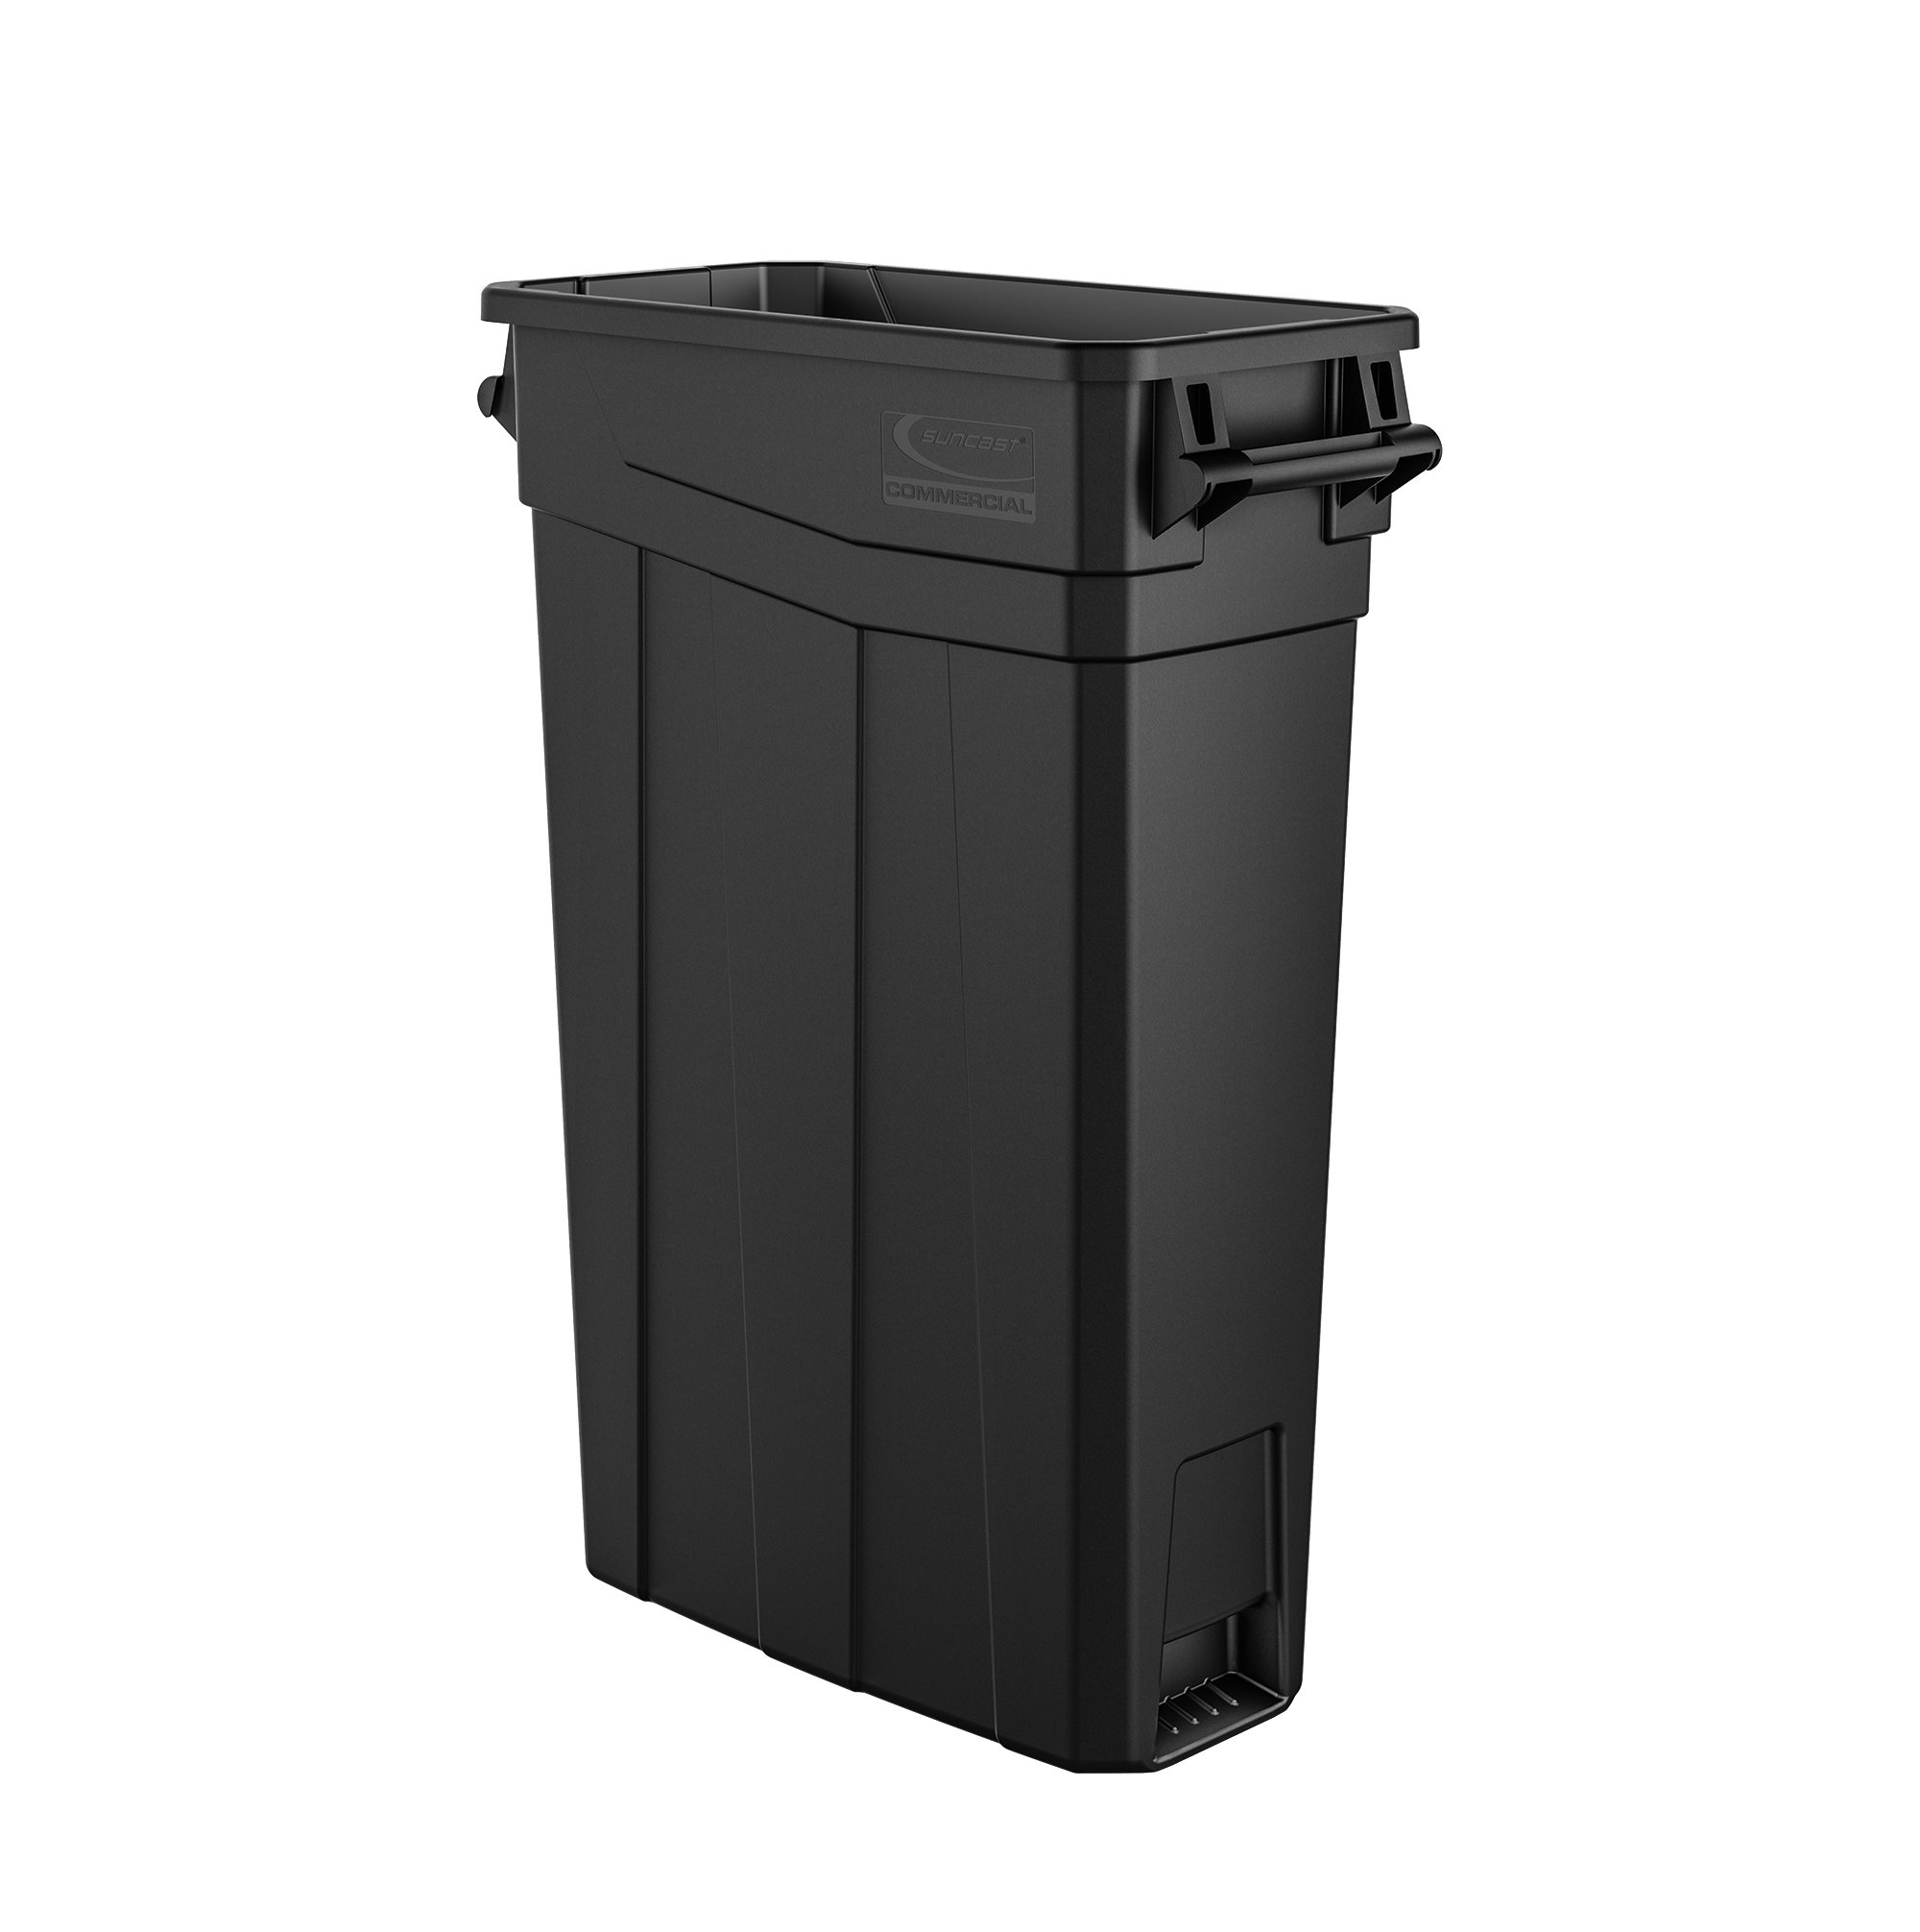 Suncast Commercial TCNH2030BK Narrow Trash Can With Handles, 30.00'' Height x 11.08'' Width, 23 gal Capacity, Black